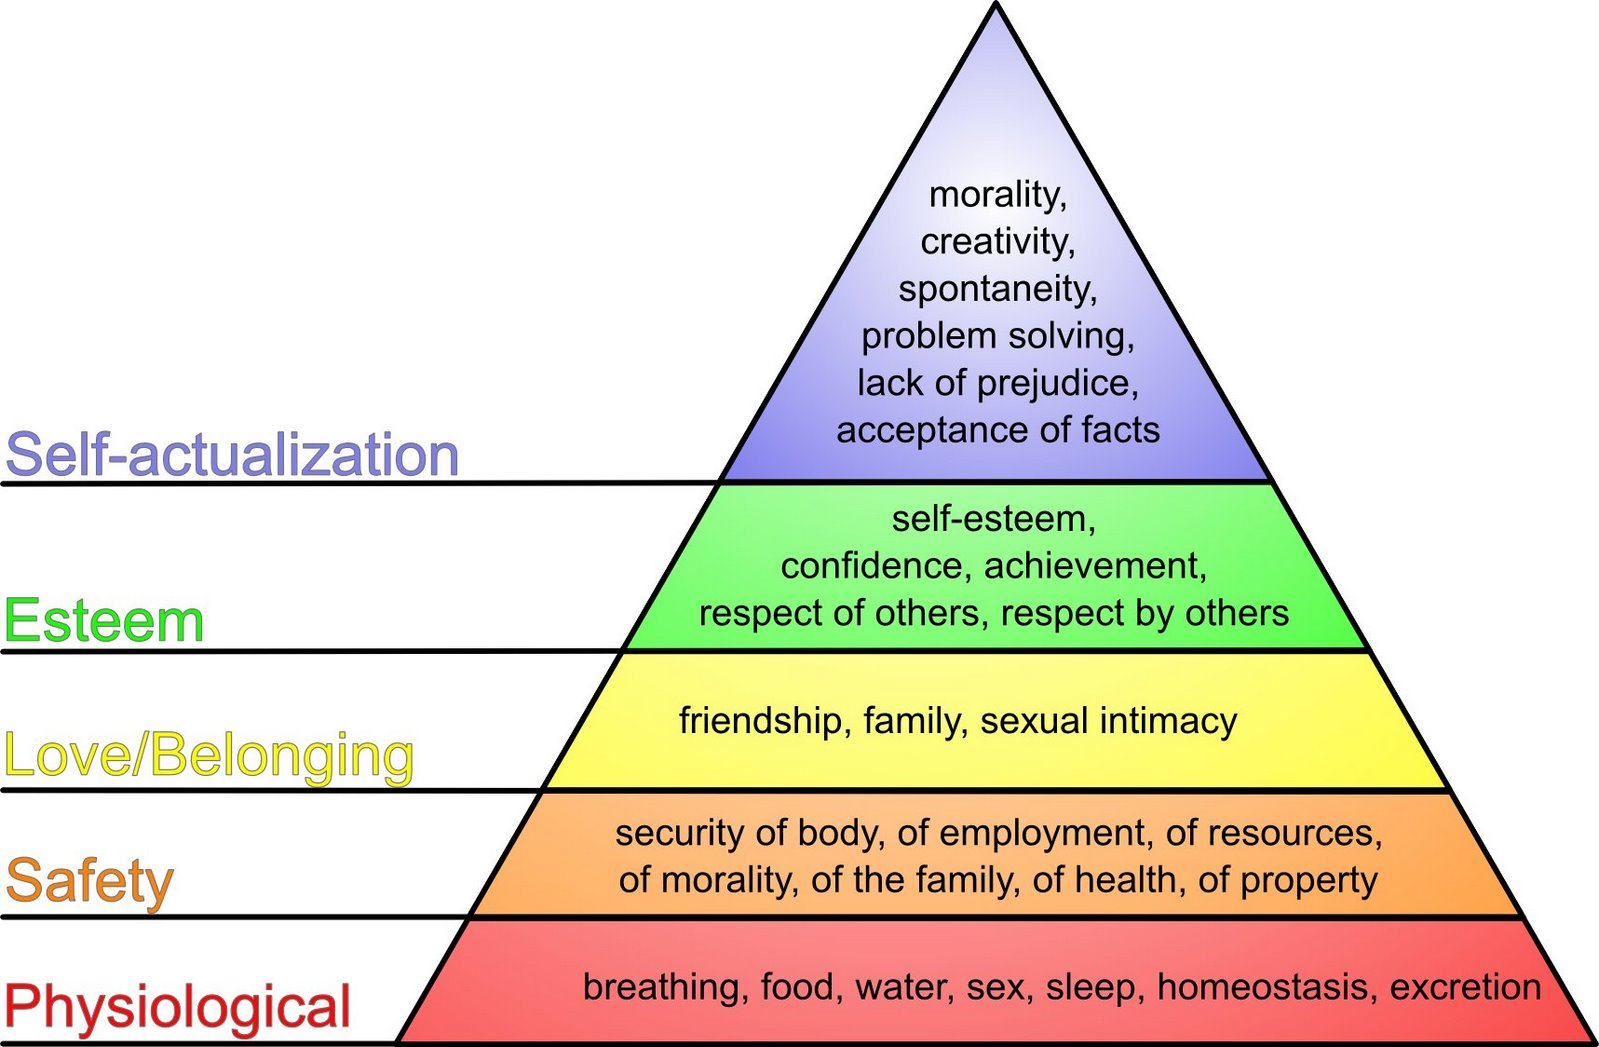 the life of abraham maslow Abraham maslow essentially made self-fulfillment and happiness a central part of his life's work in a break from the other experts of his time, he wanted to understand what motivated the great people of history and to understand human potential he wanted to know what humans are capable of as their healthiest self.